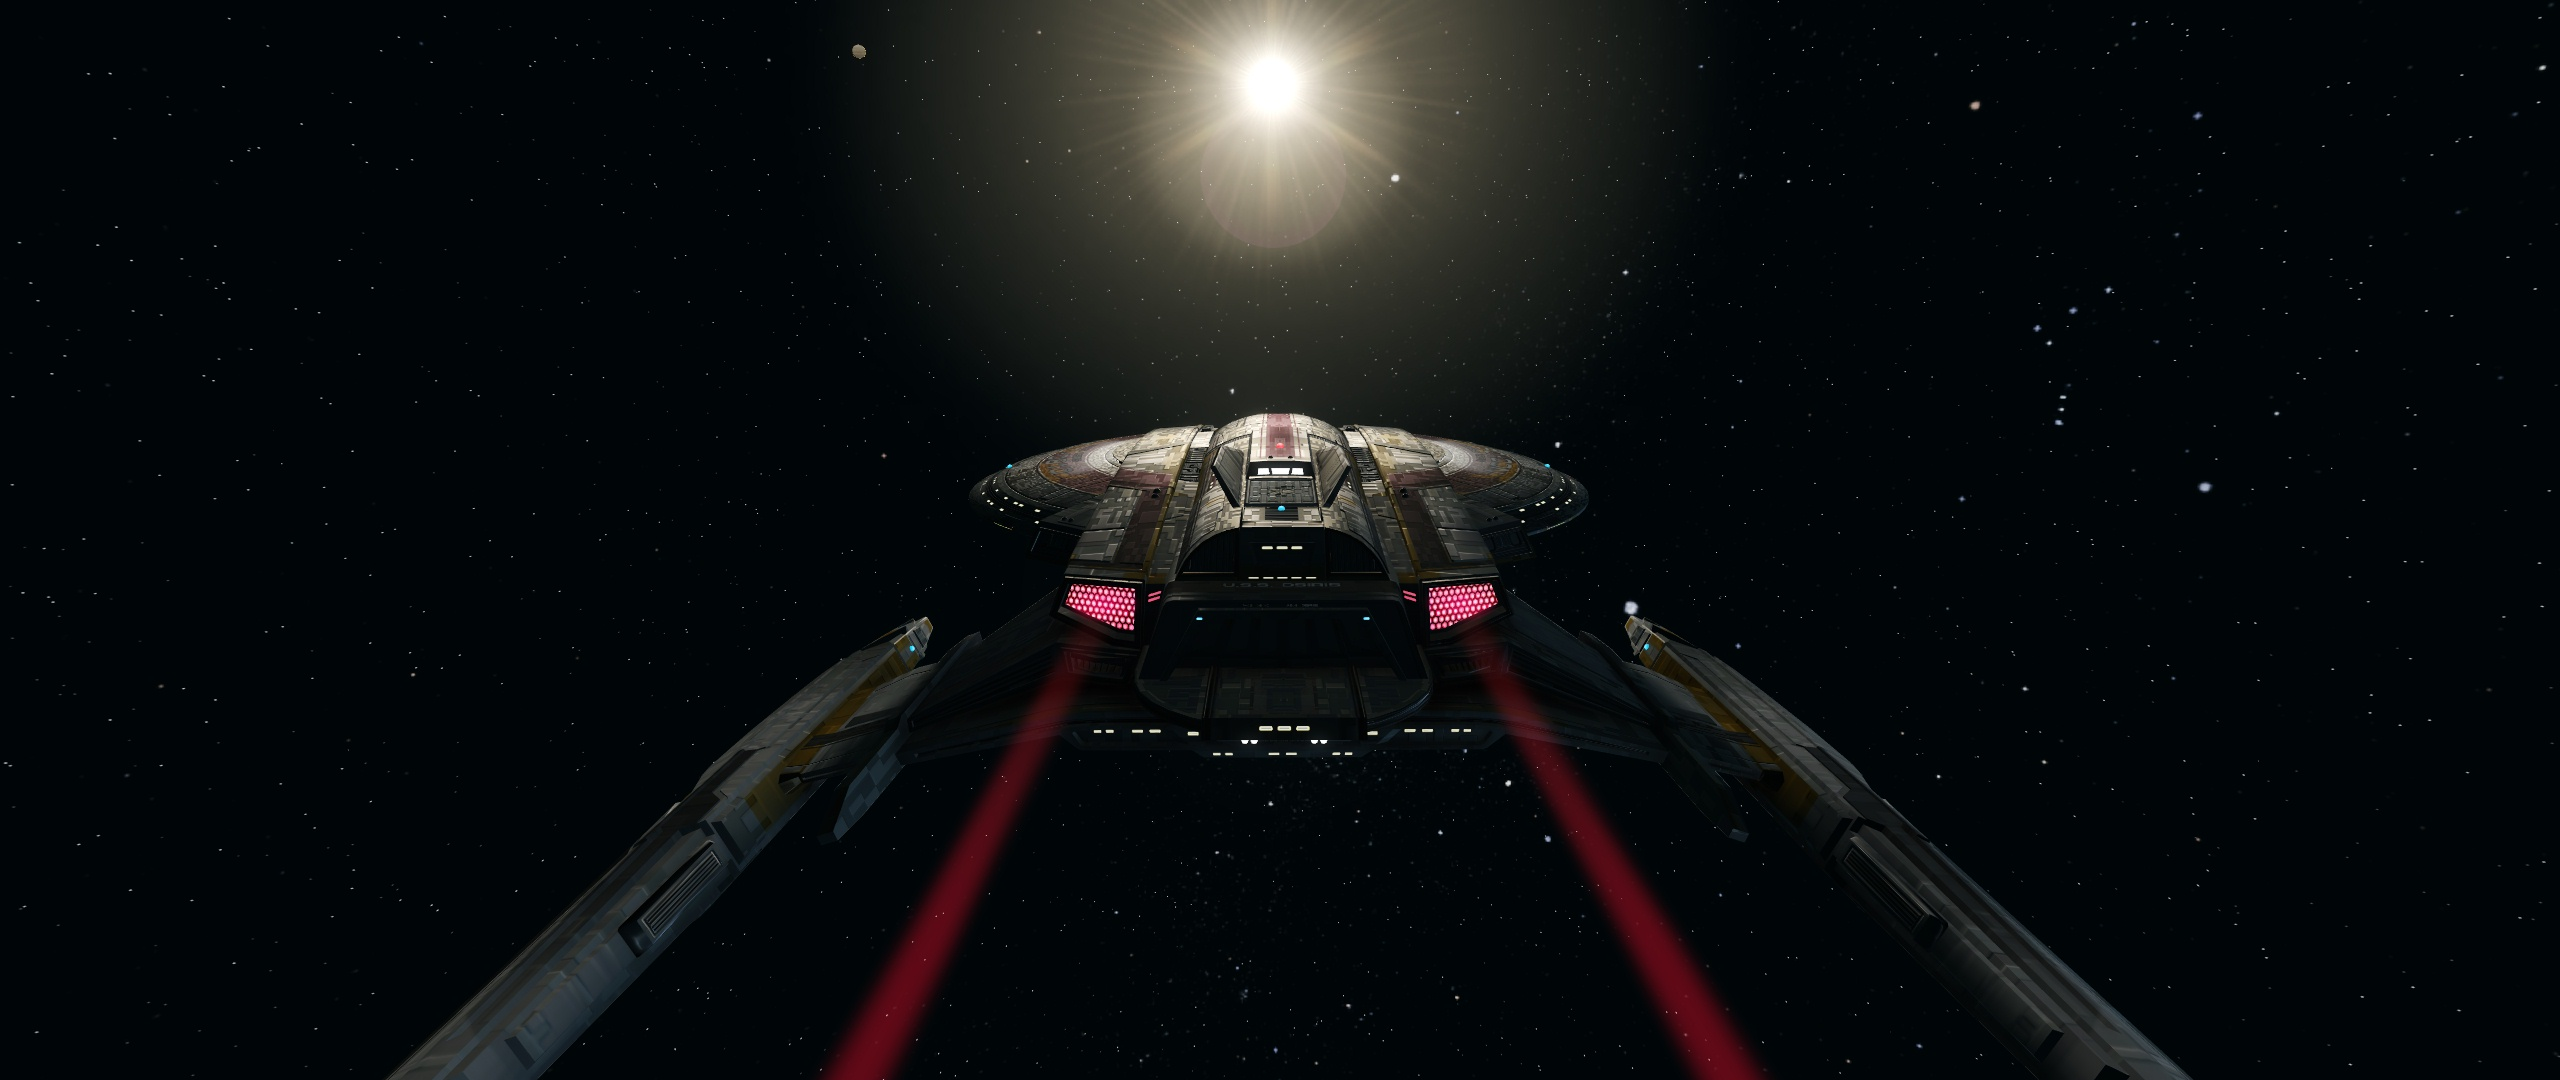 The USS Osiris explores the galaxy.